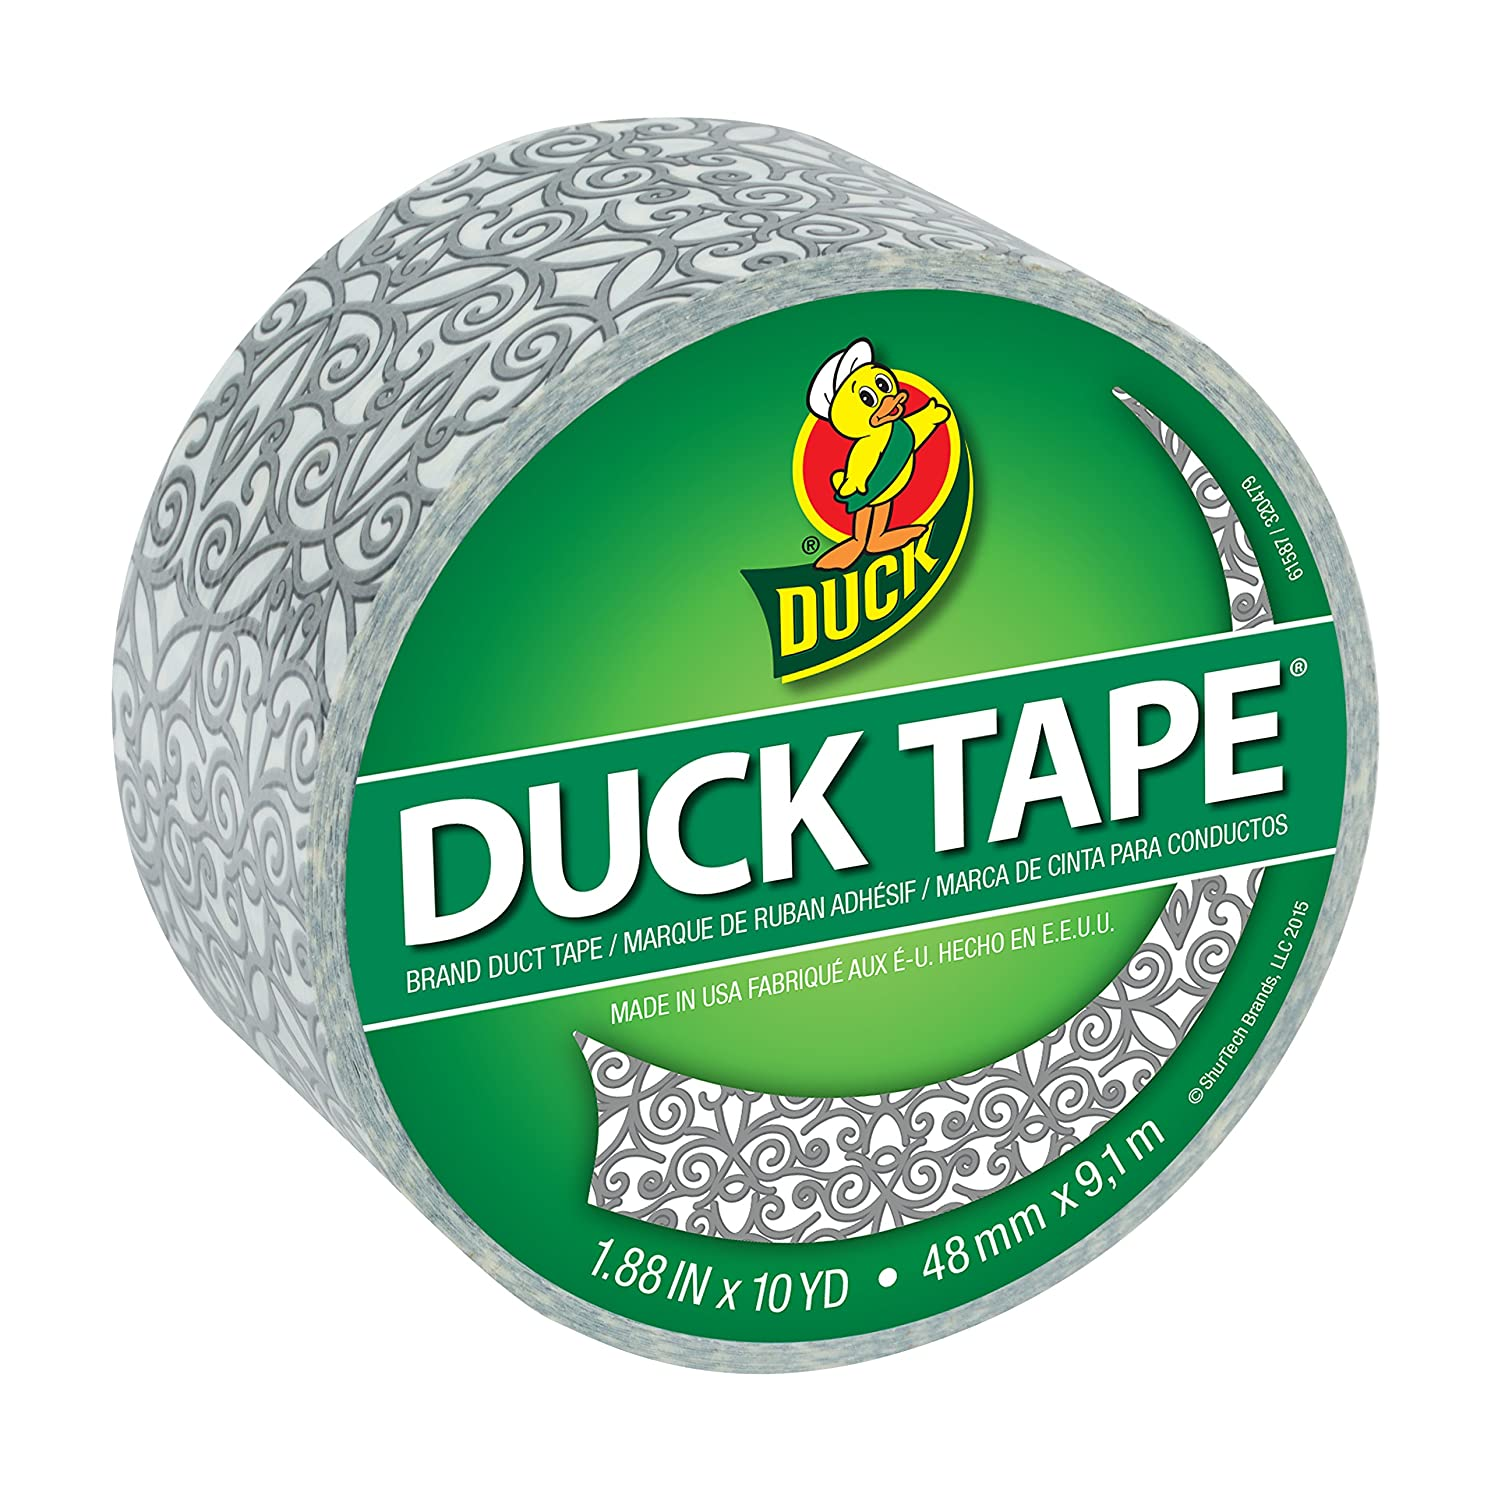 Duck Brand 284170 Printed Duct Tape, Silver Scroll, 1.88 Inches x 10 Yards, Single Roll